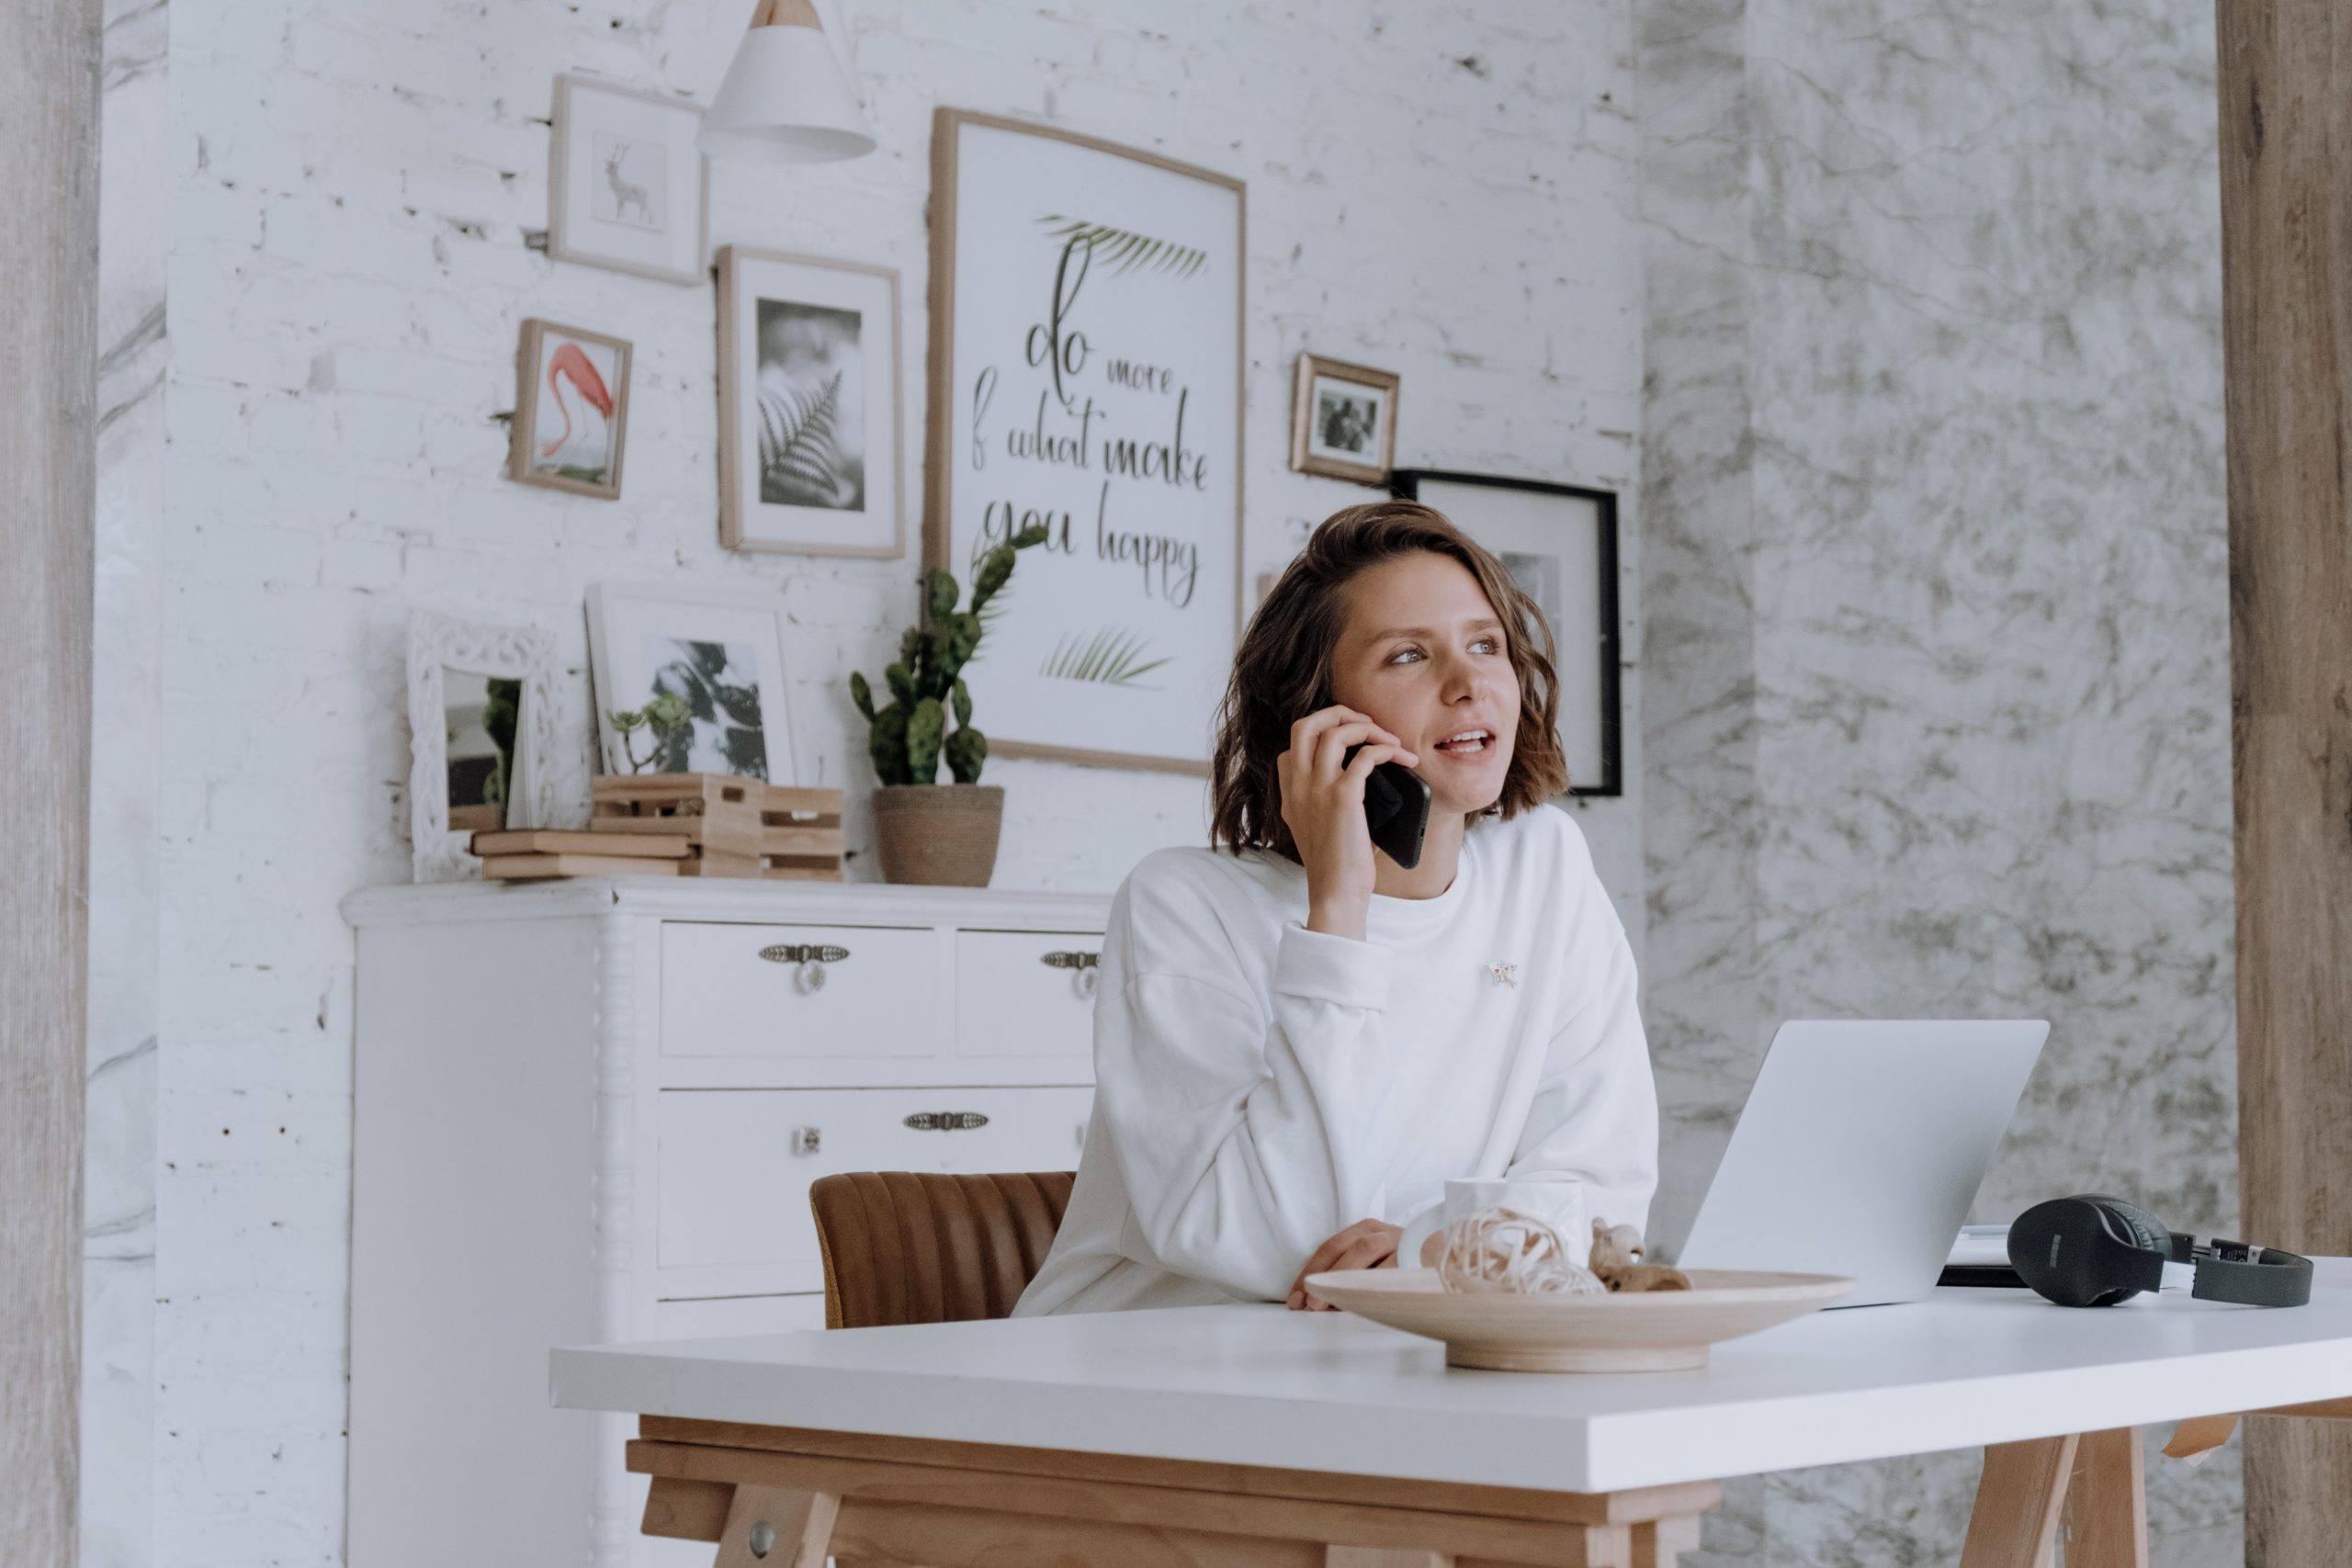 Home worker on phone